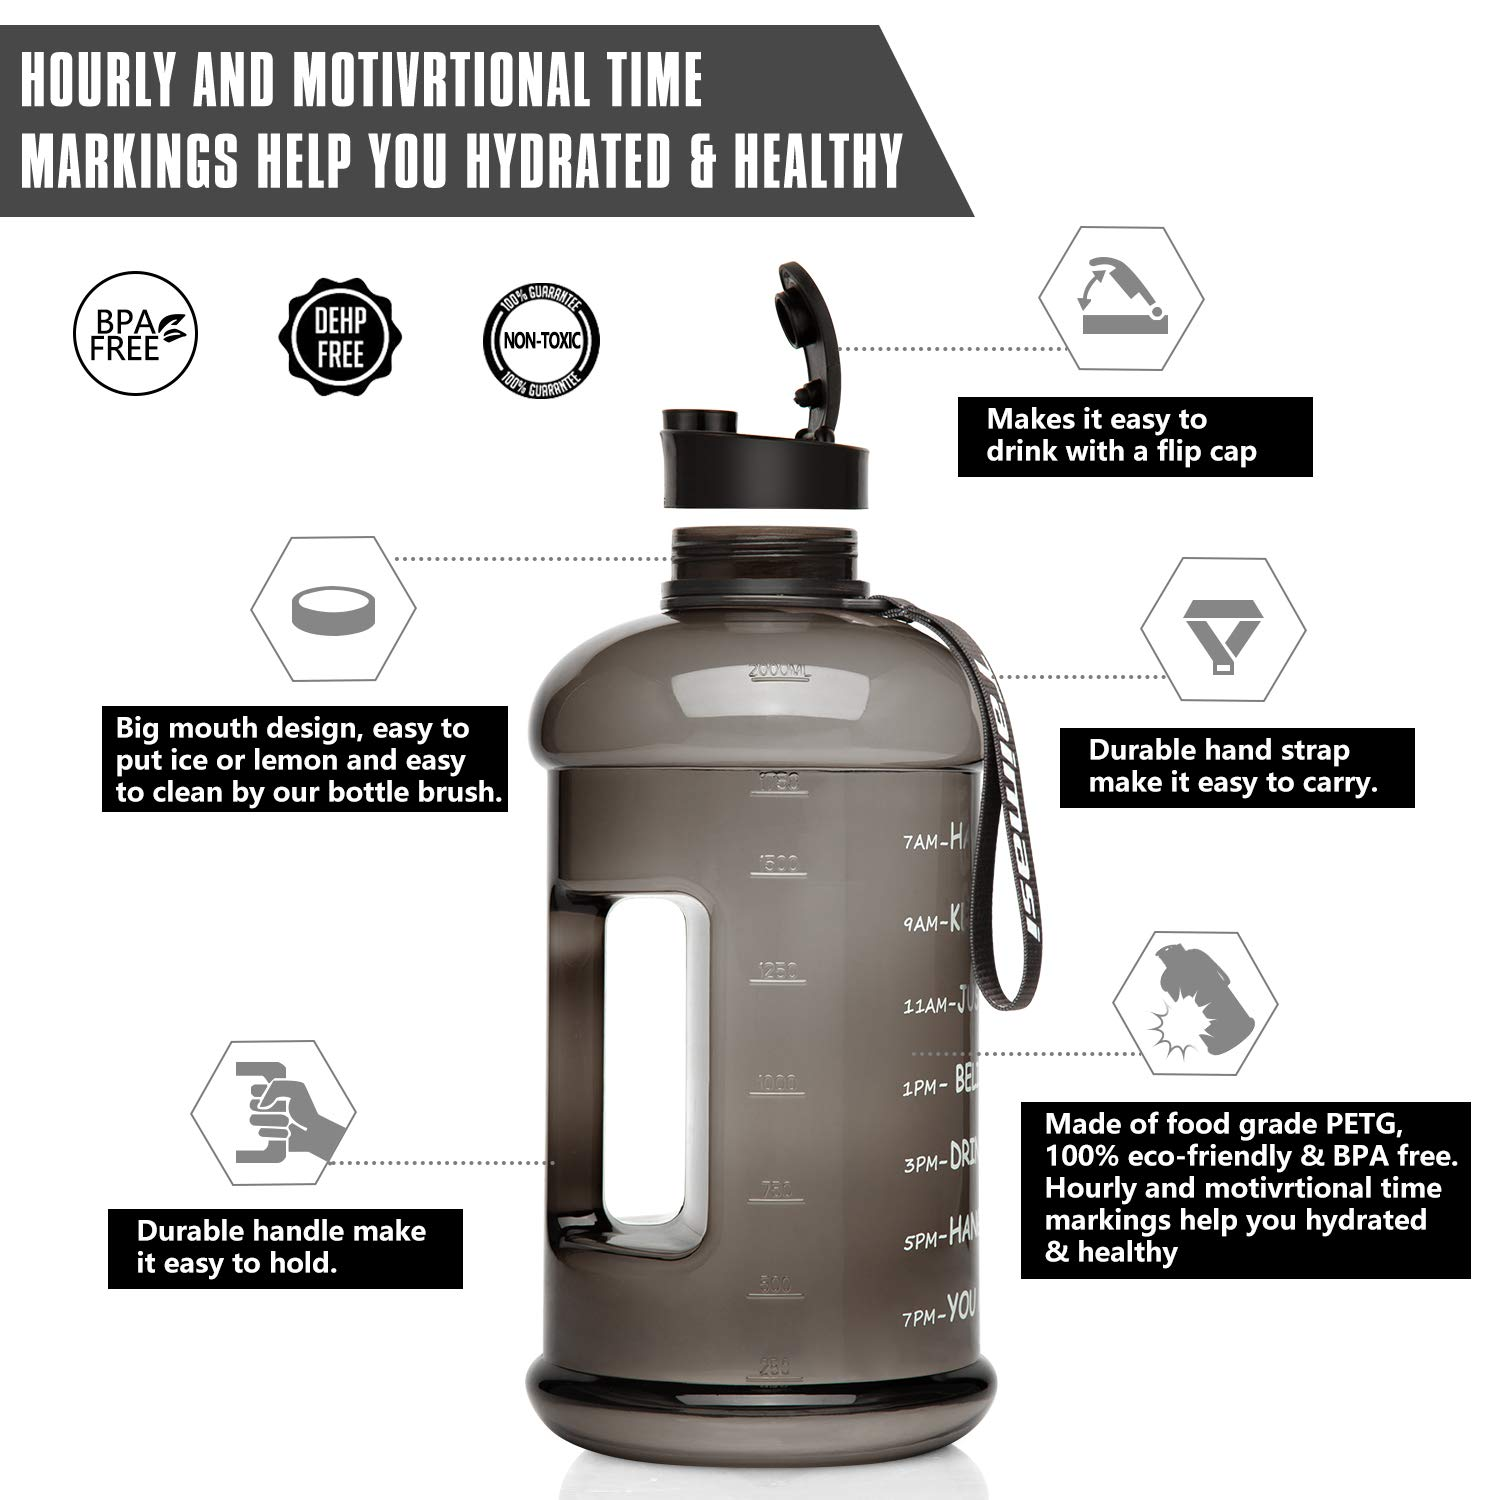 Reusable Leak Proof Motivational Water Bottle for GYM Fitness Camping 2.2L//73oz Water Bottle With Time Marker Large Sports Water bottle Water Jug with Sleeve /& Cleaning Brushes /& Cooling Towel